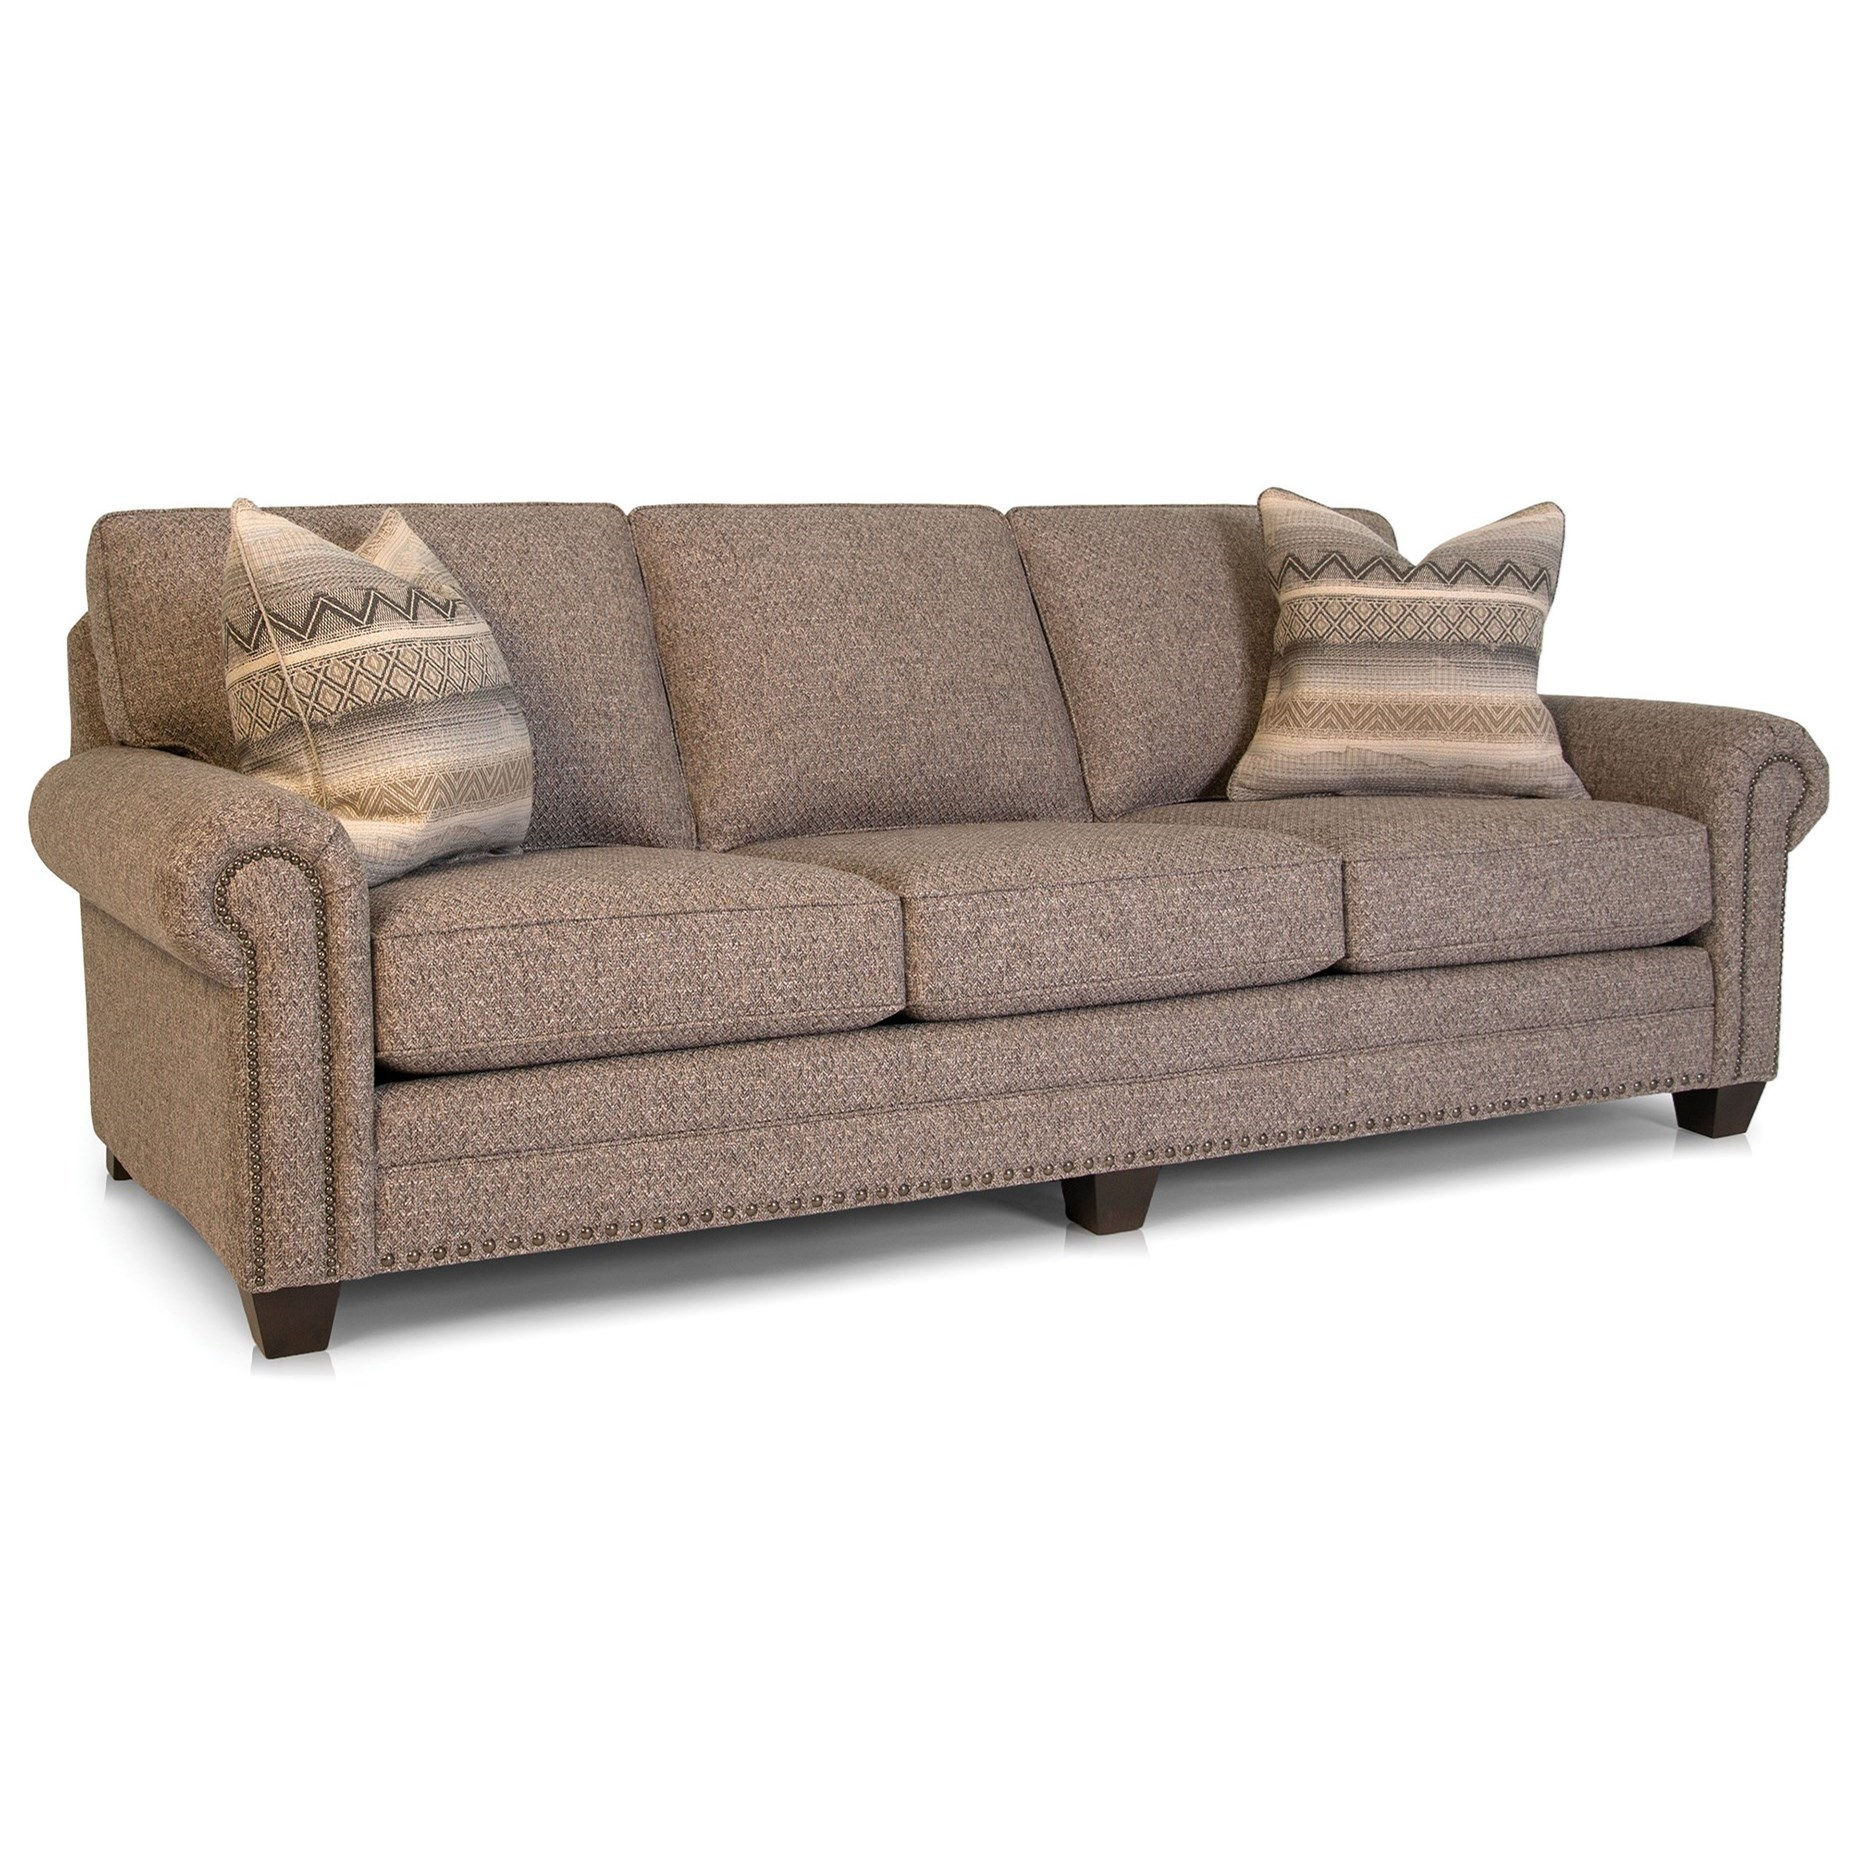 253 Sofa by Smith Brothers at Wayside Furniture